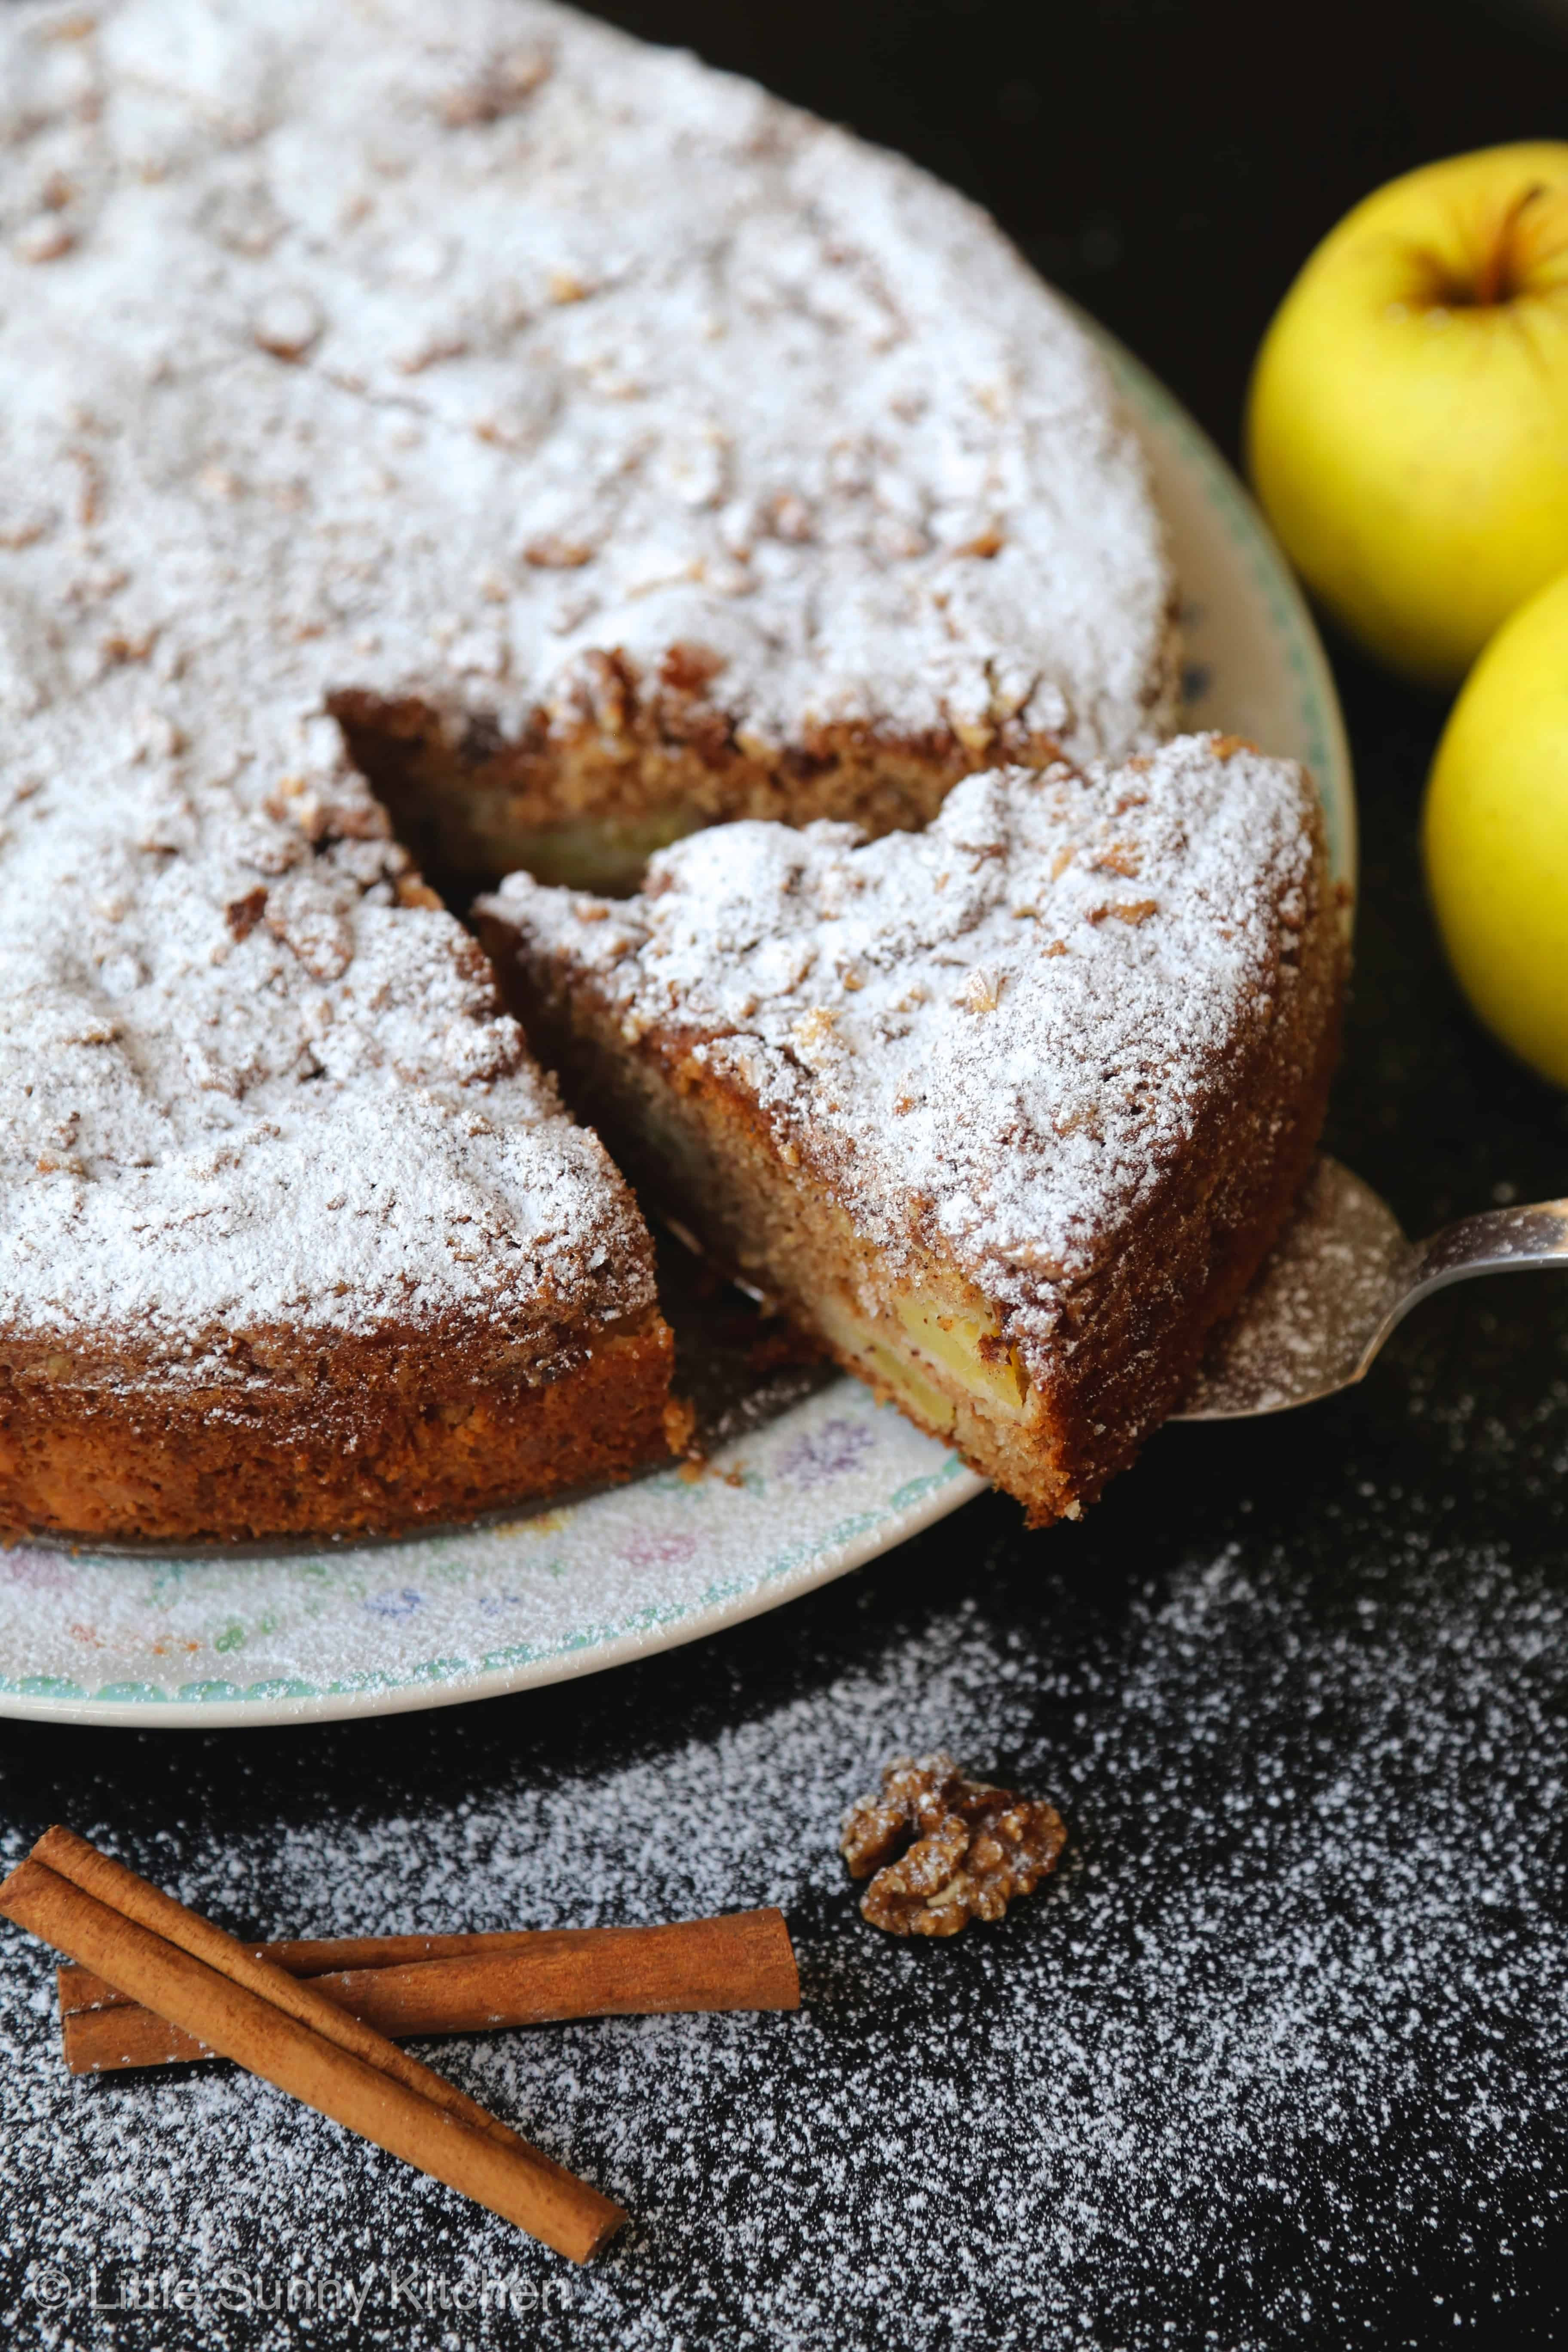 Apple Sharlotka cake topped with powdered sugar with apples and cinnamon sticks on the side.